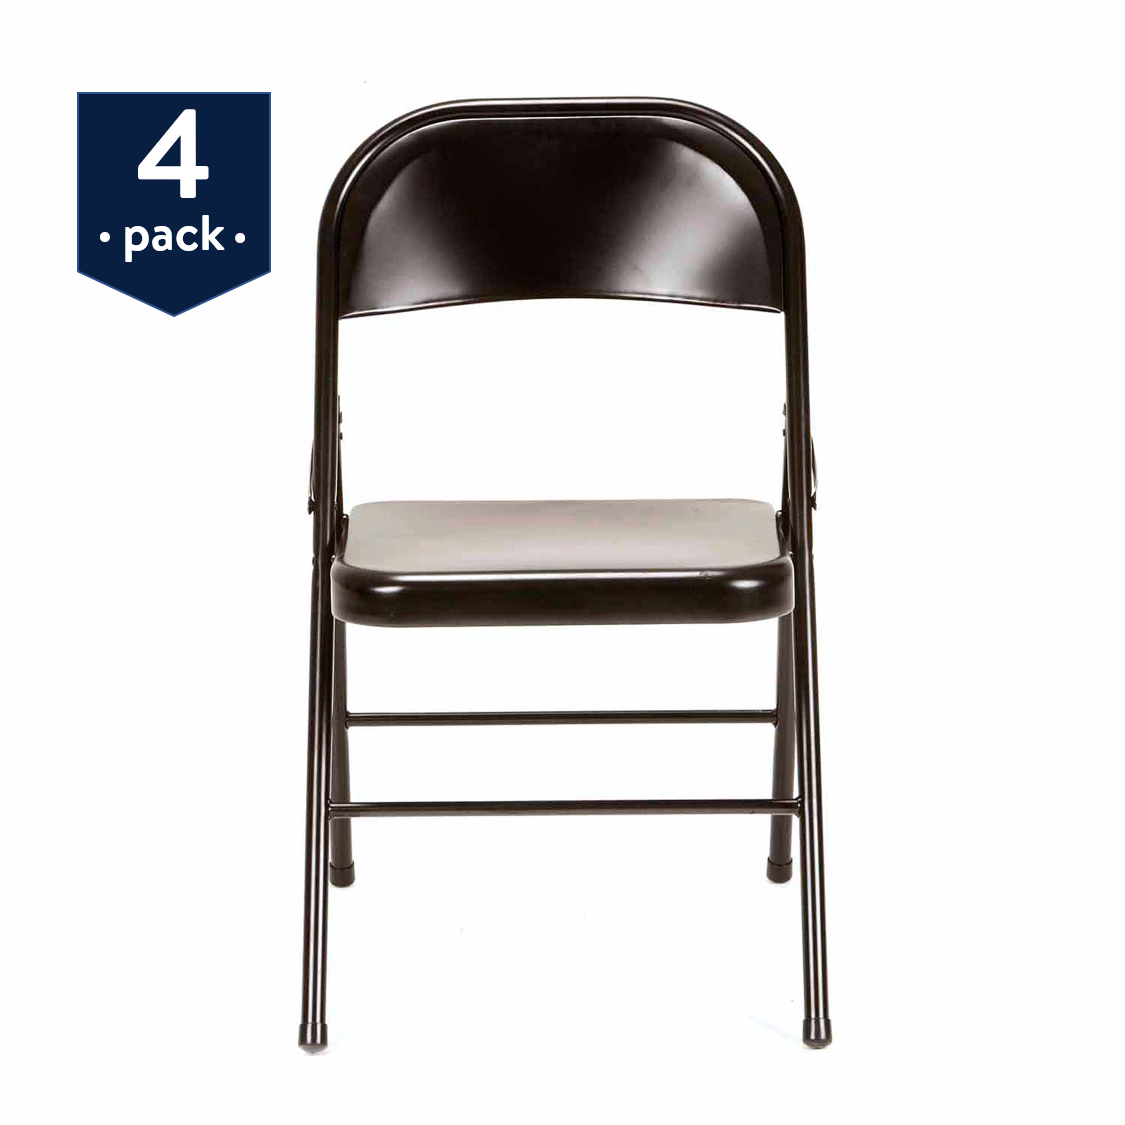 Details about Mainstays Steel Folding Chair (9-Pack), Black